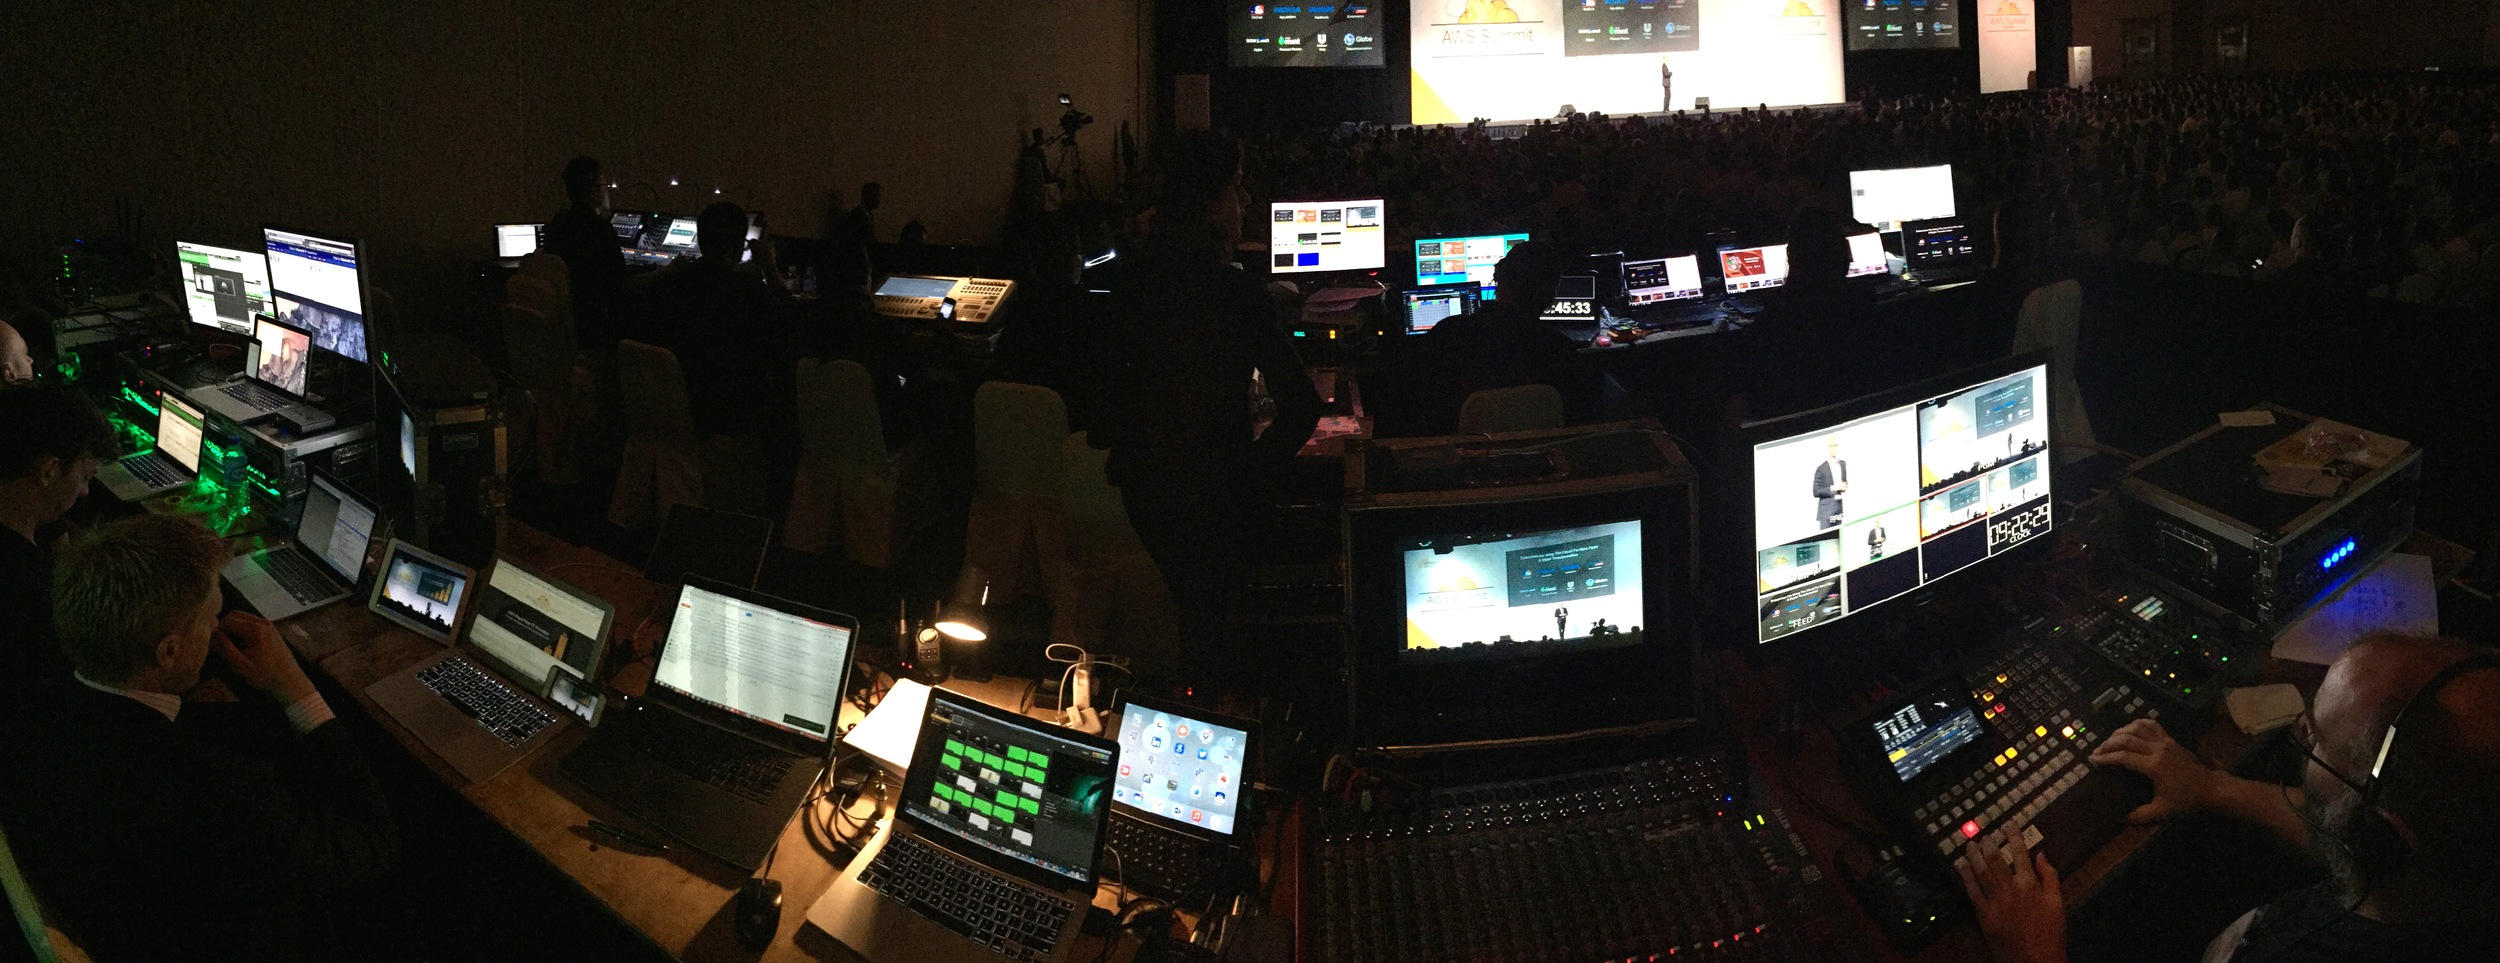 The Deck's vision control alongside VioCorp's streaming tech and ETG's front-of-house setup.